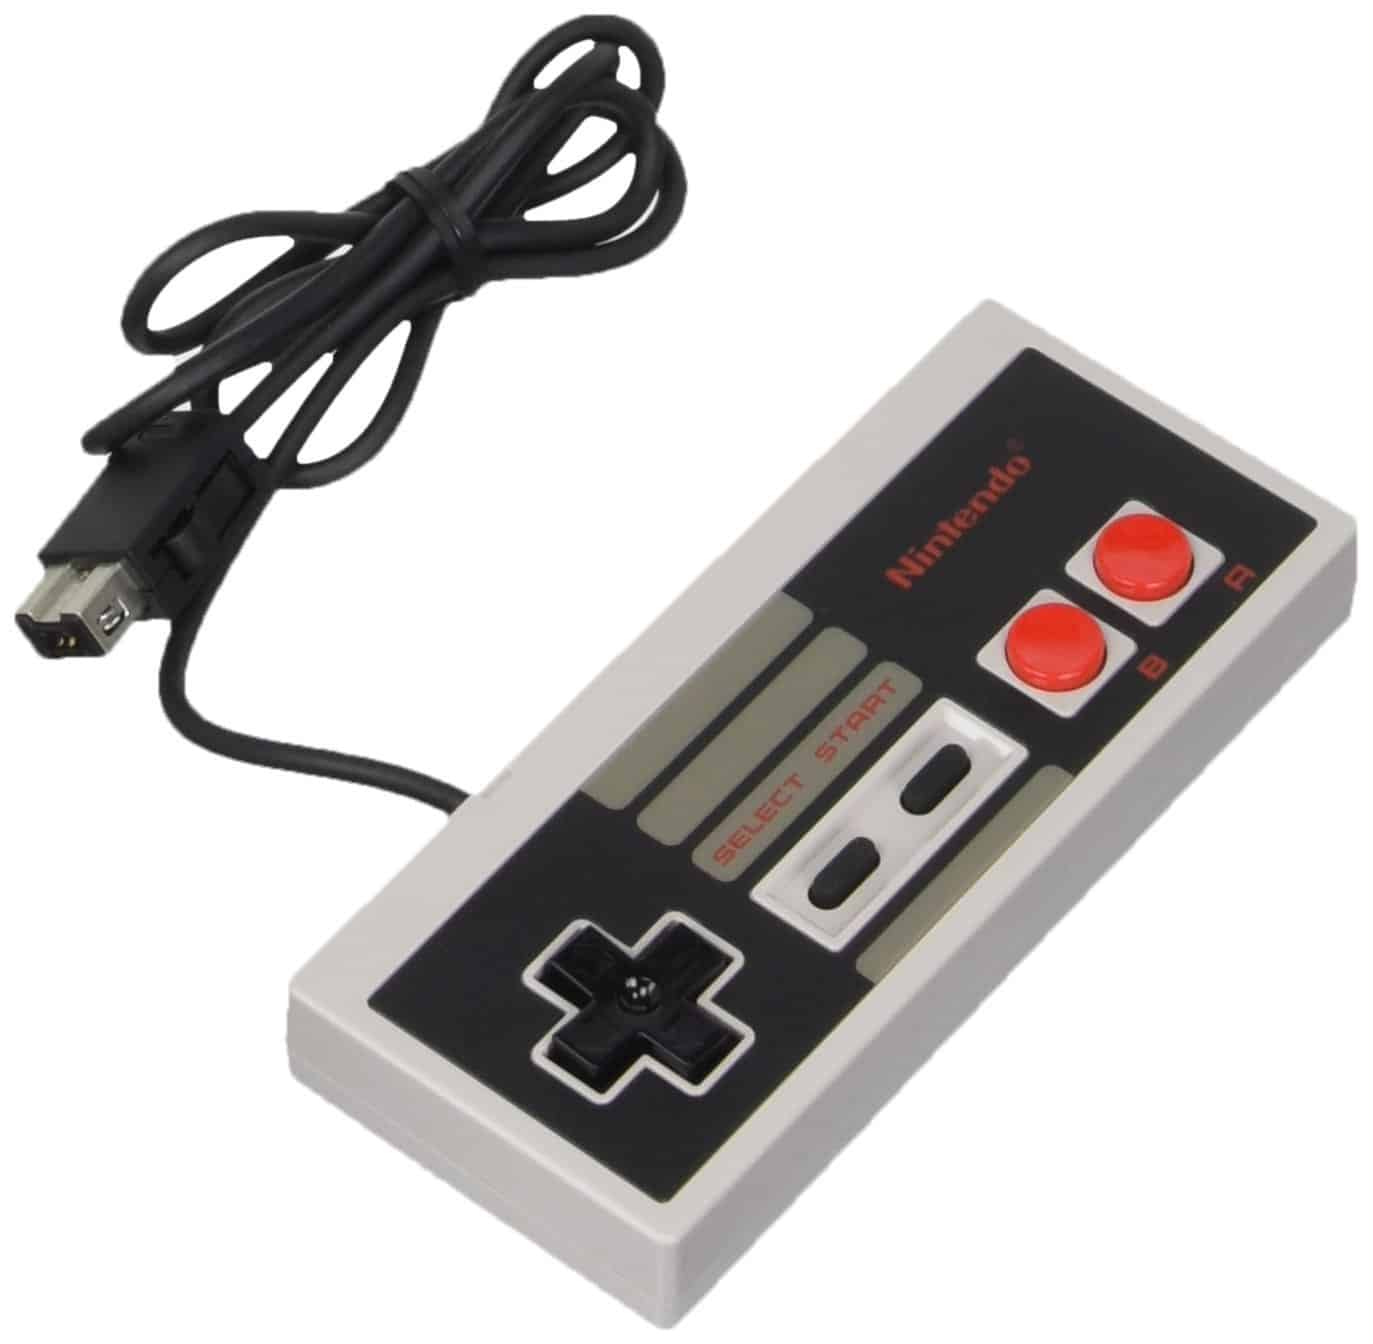 a picture of a nes classic controller